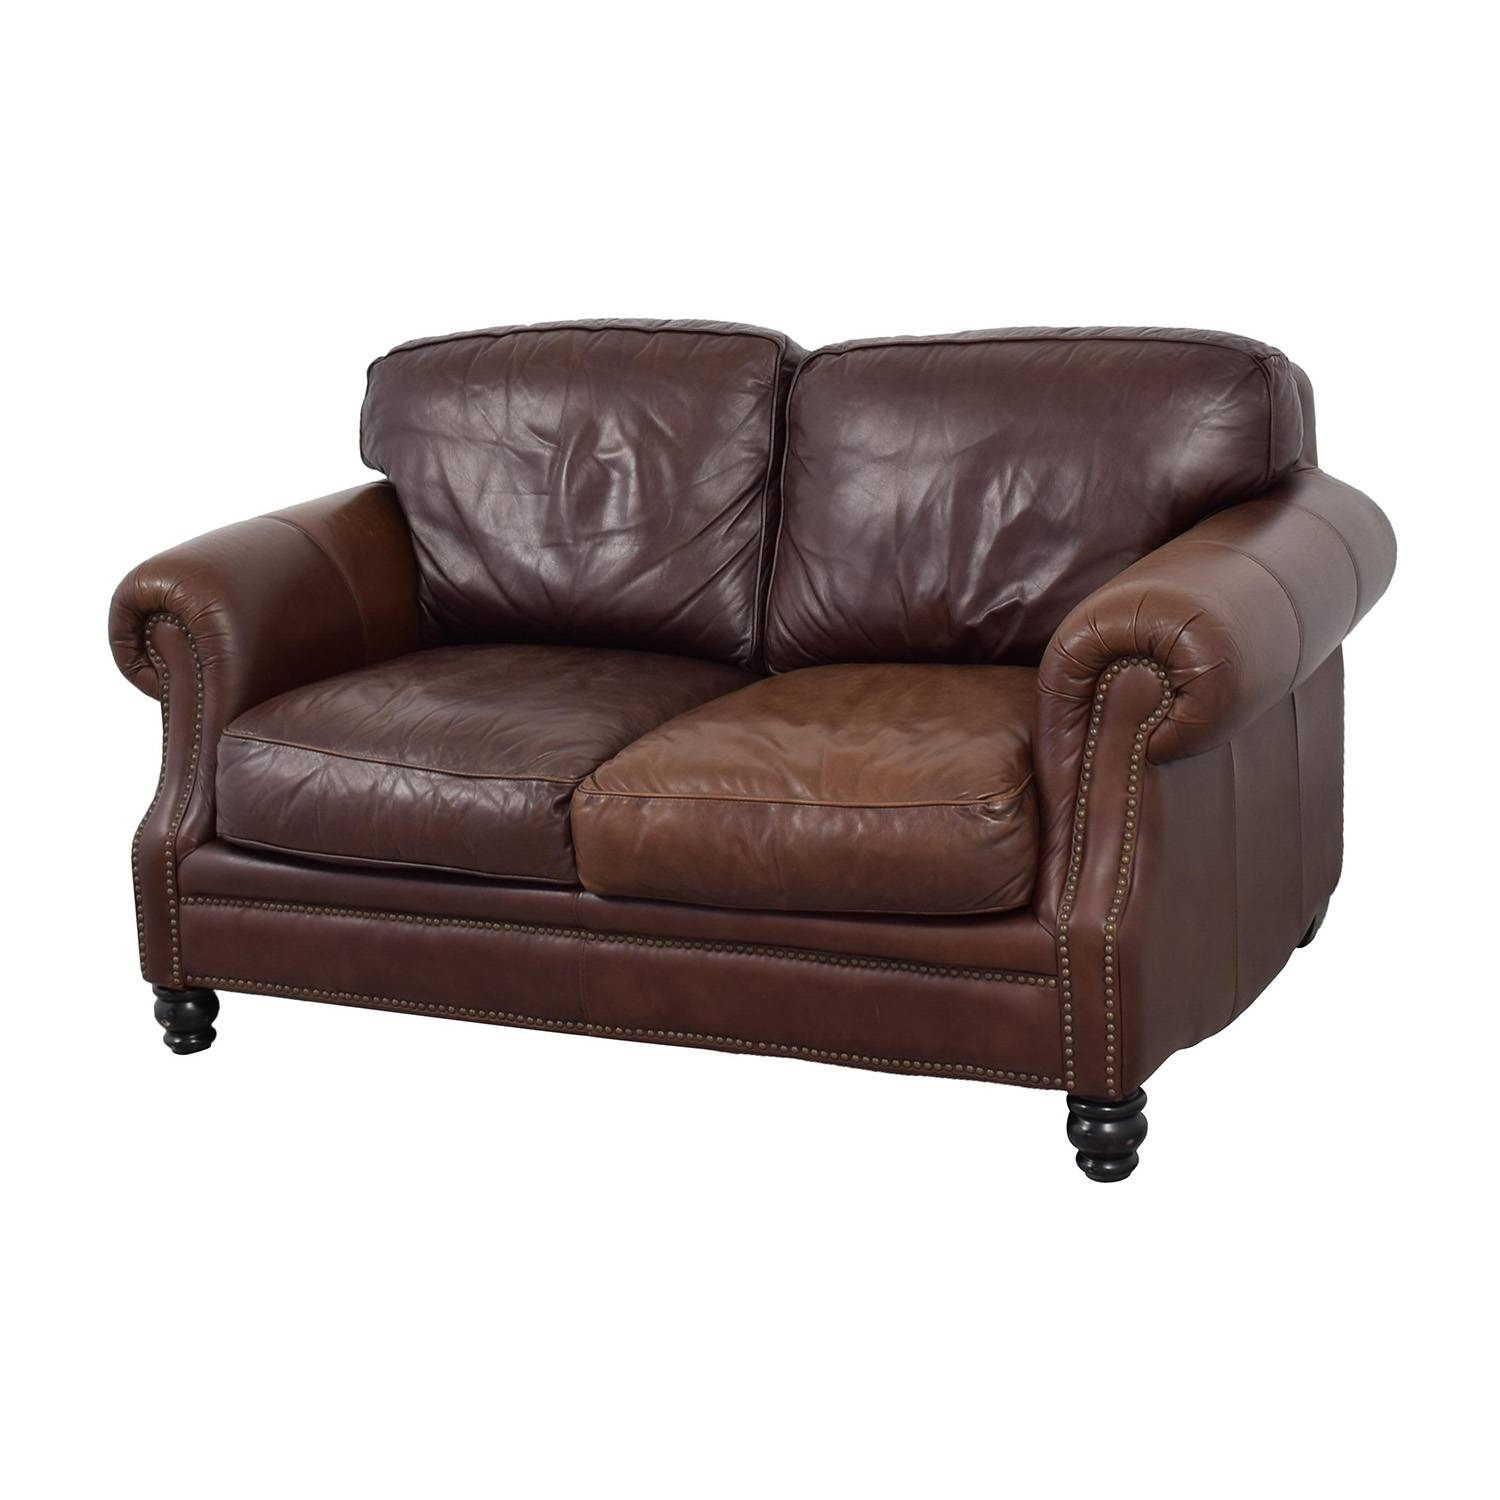 53% Off - Bloomingdale's Bloomingdale's Brown Leather Loveseat / Sofas inside Bloomingdales Sofas (Image 2 of 15)